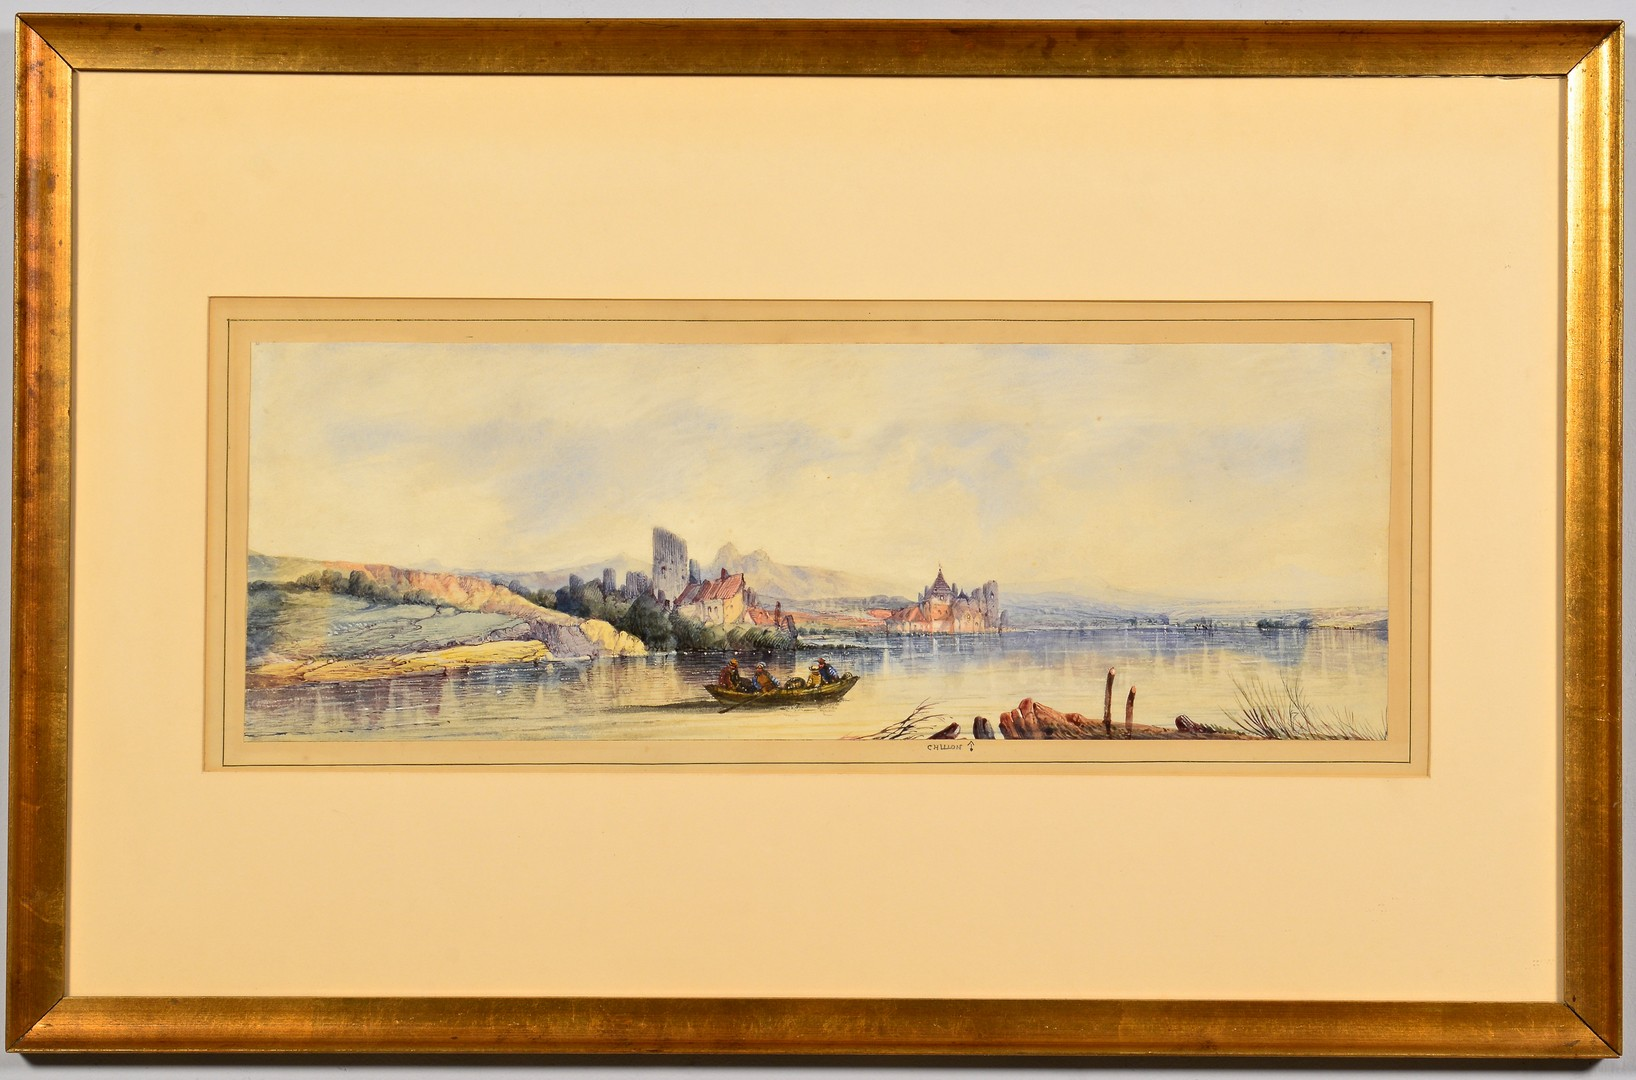 Lot 835: English Landscape Watercolor, A. H. Vickers